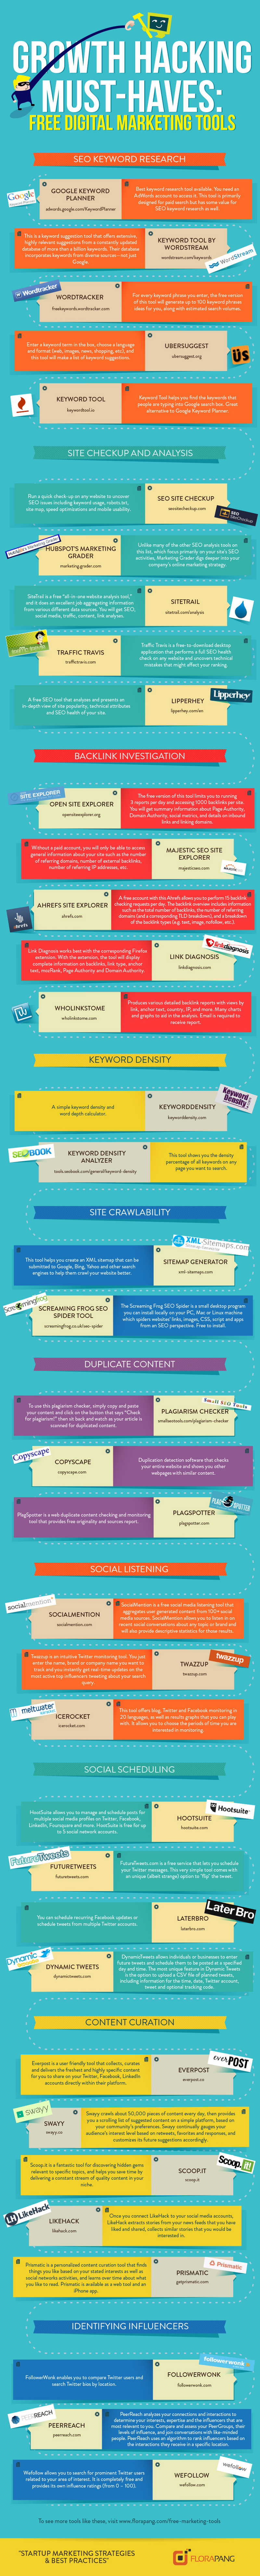 infographic-SEO-Marketing-Tools